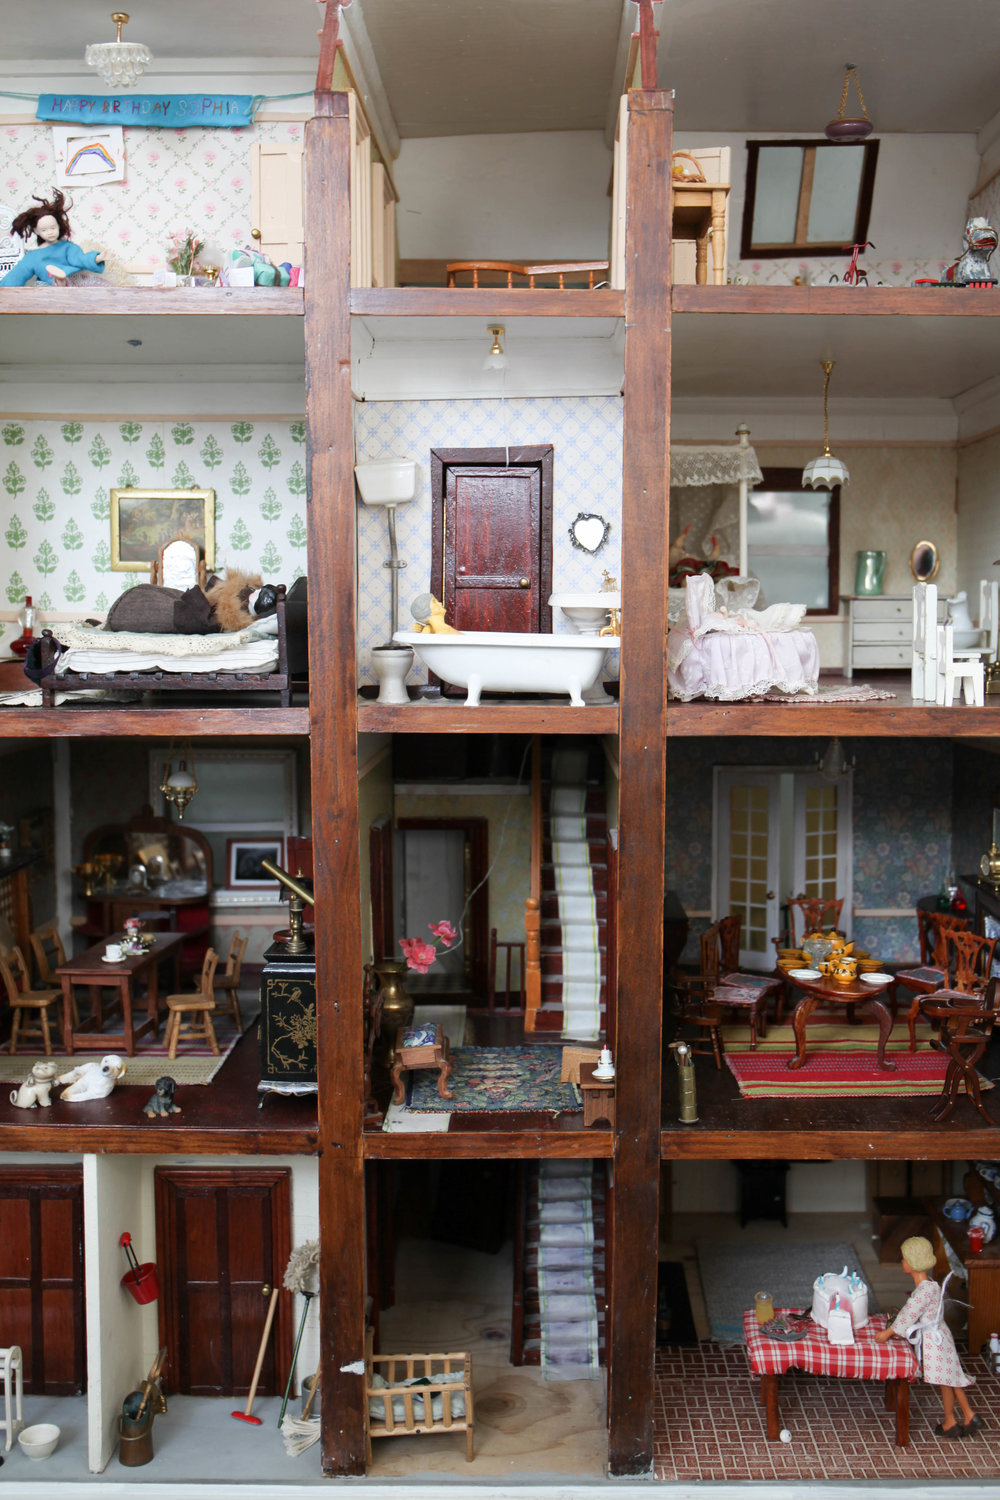 Spit spot: [Doll's house, made by Ron Hickman as a gift to his wife, Betty, in c. 1980]